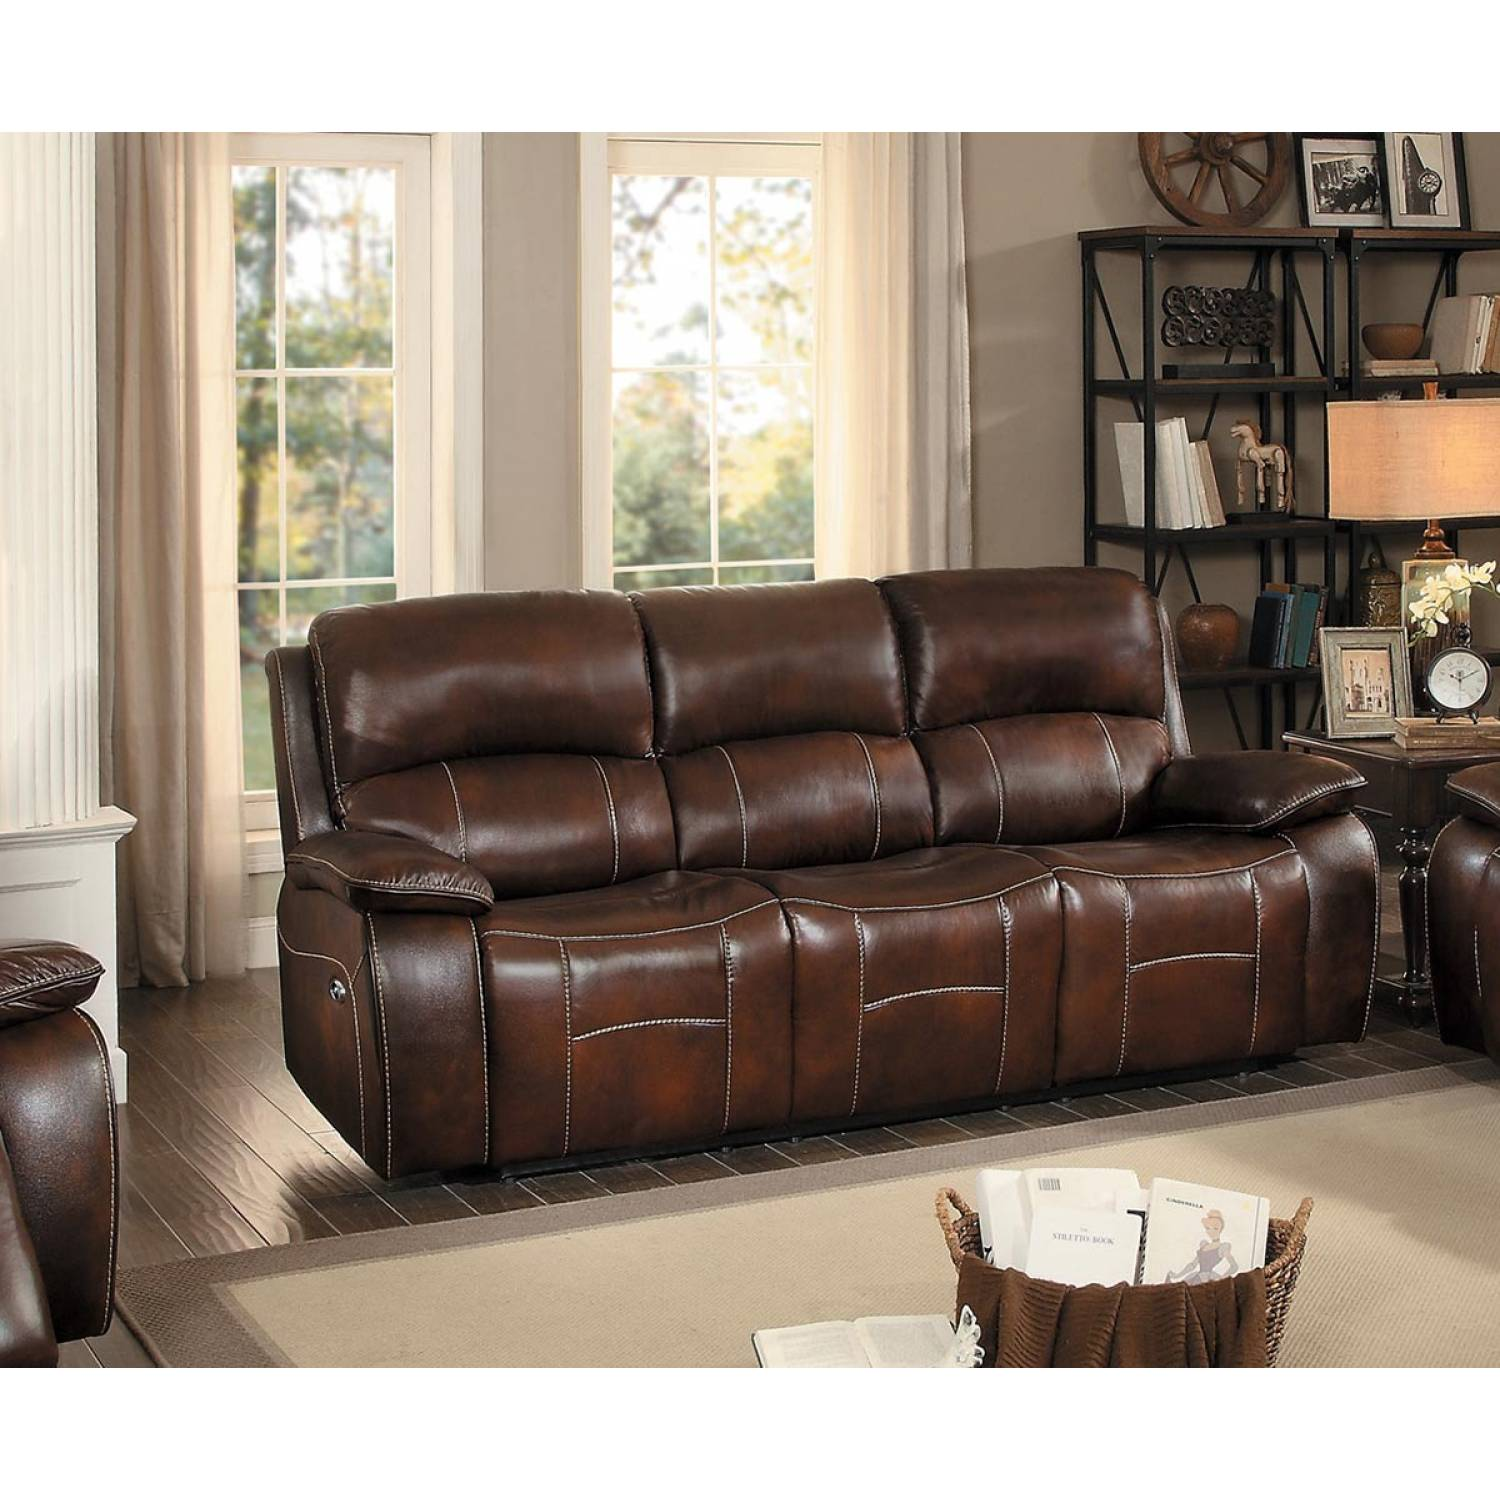 Astounding Mahala Power Double Reclining Sofa Brown Top Grain Leather Match Bralicious Painted Fabric Chair Ideas Braliciousco